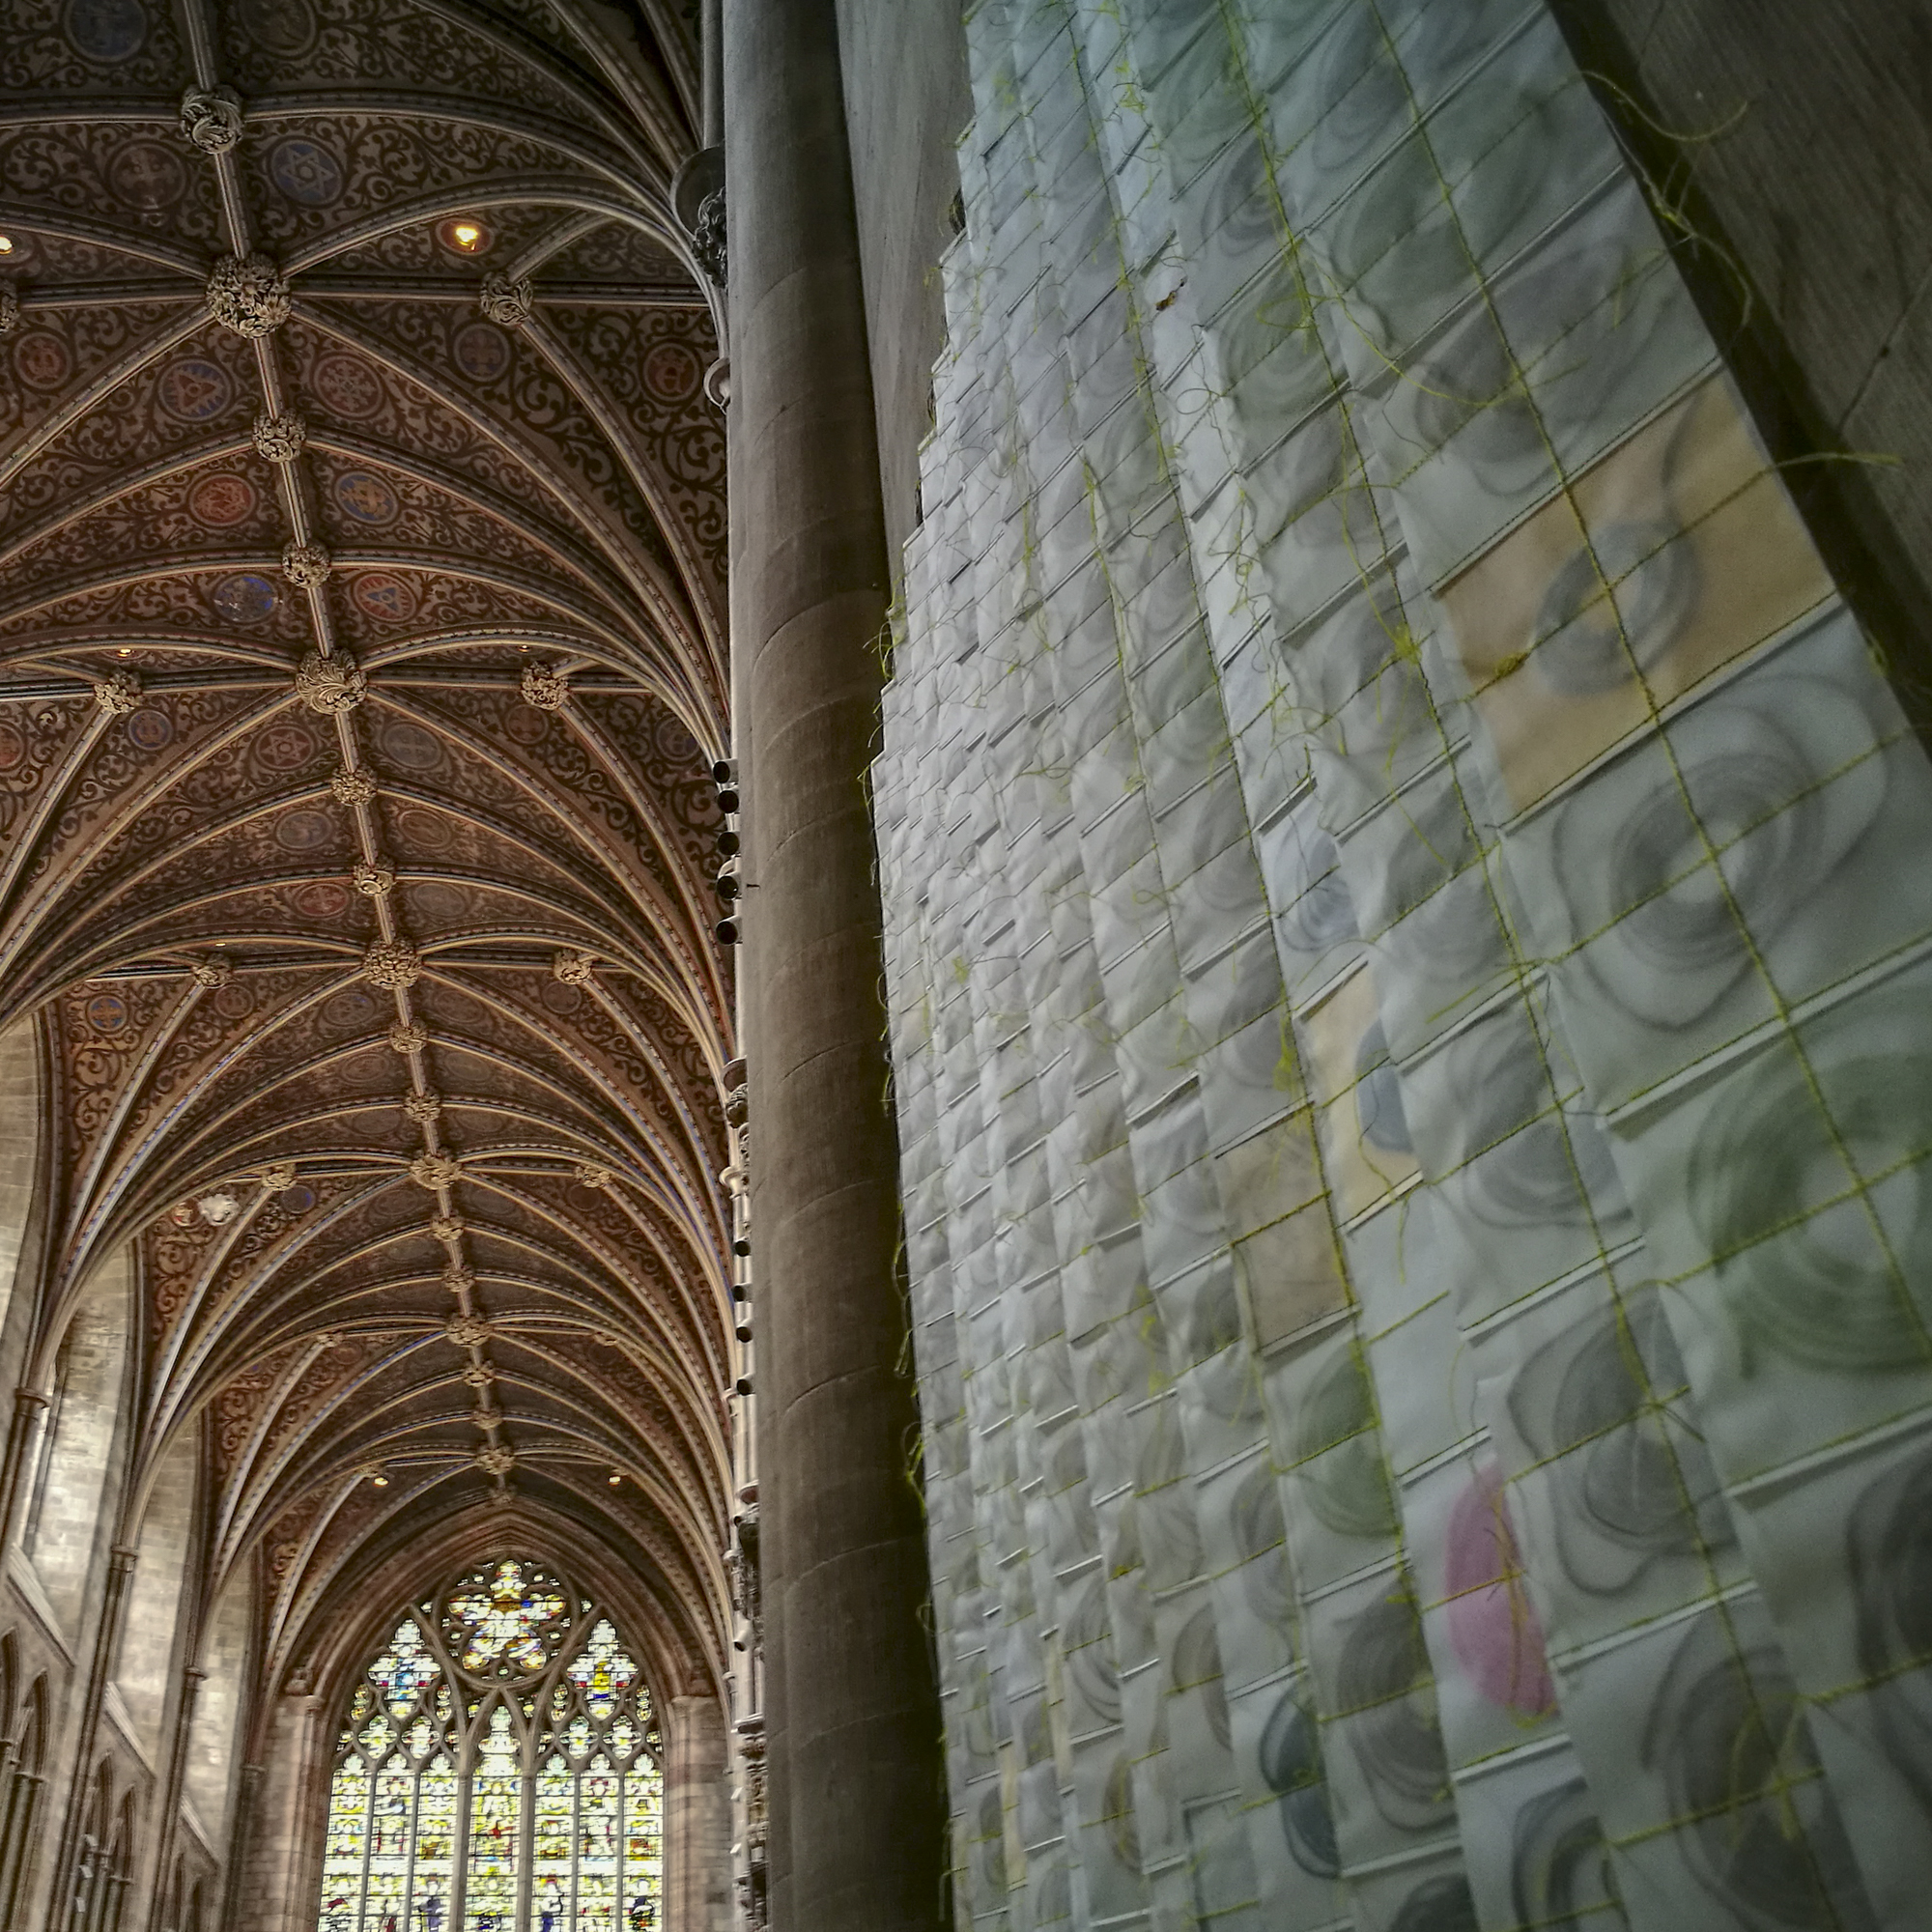 Re-Making Maps installation at Hereford Cathedral by Michelle Rumney